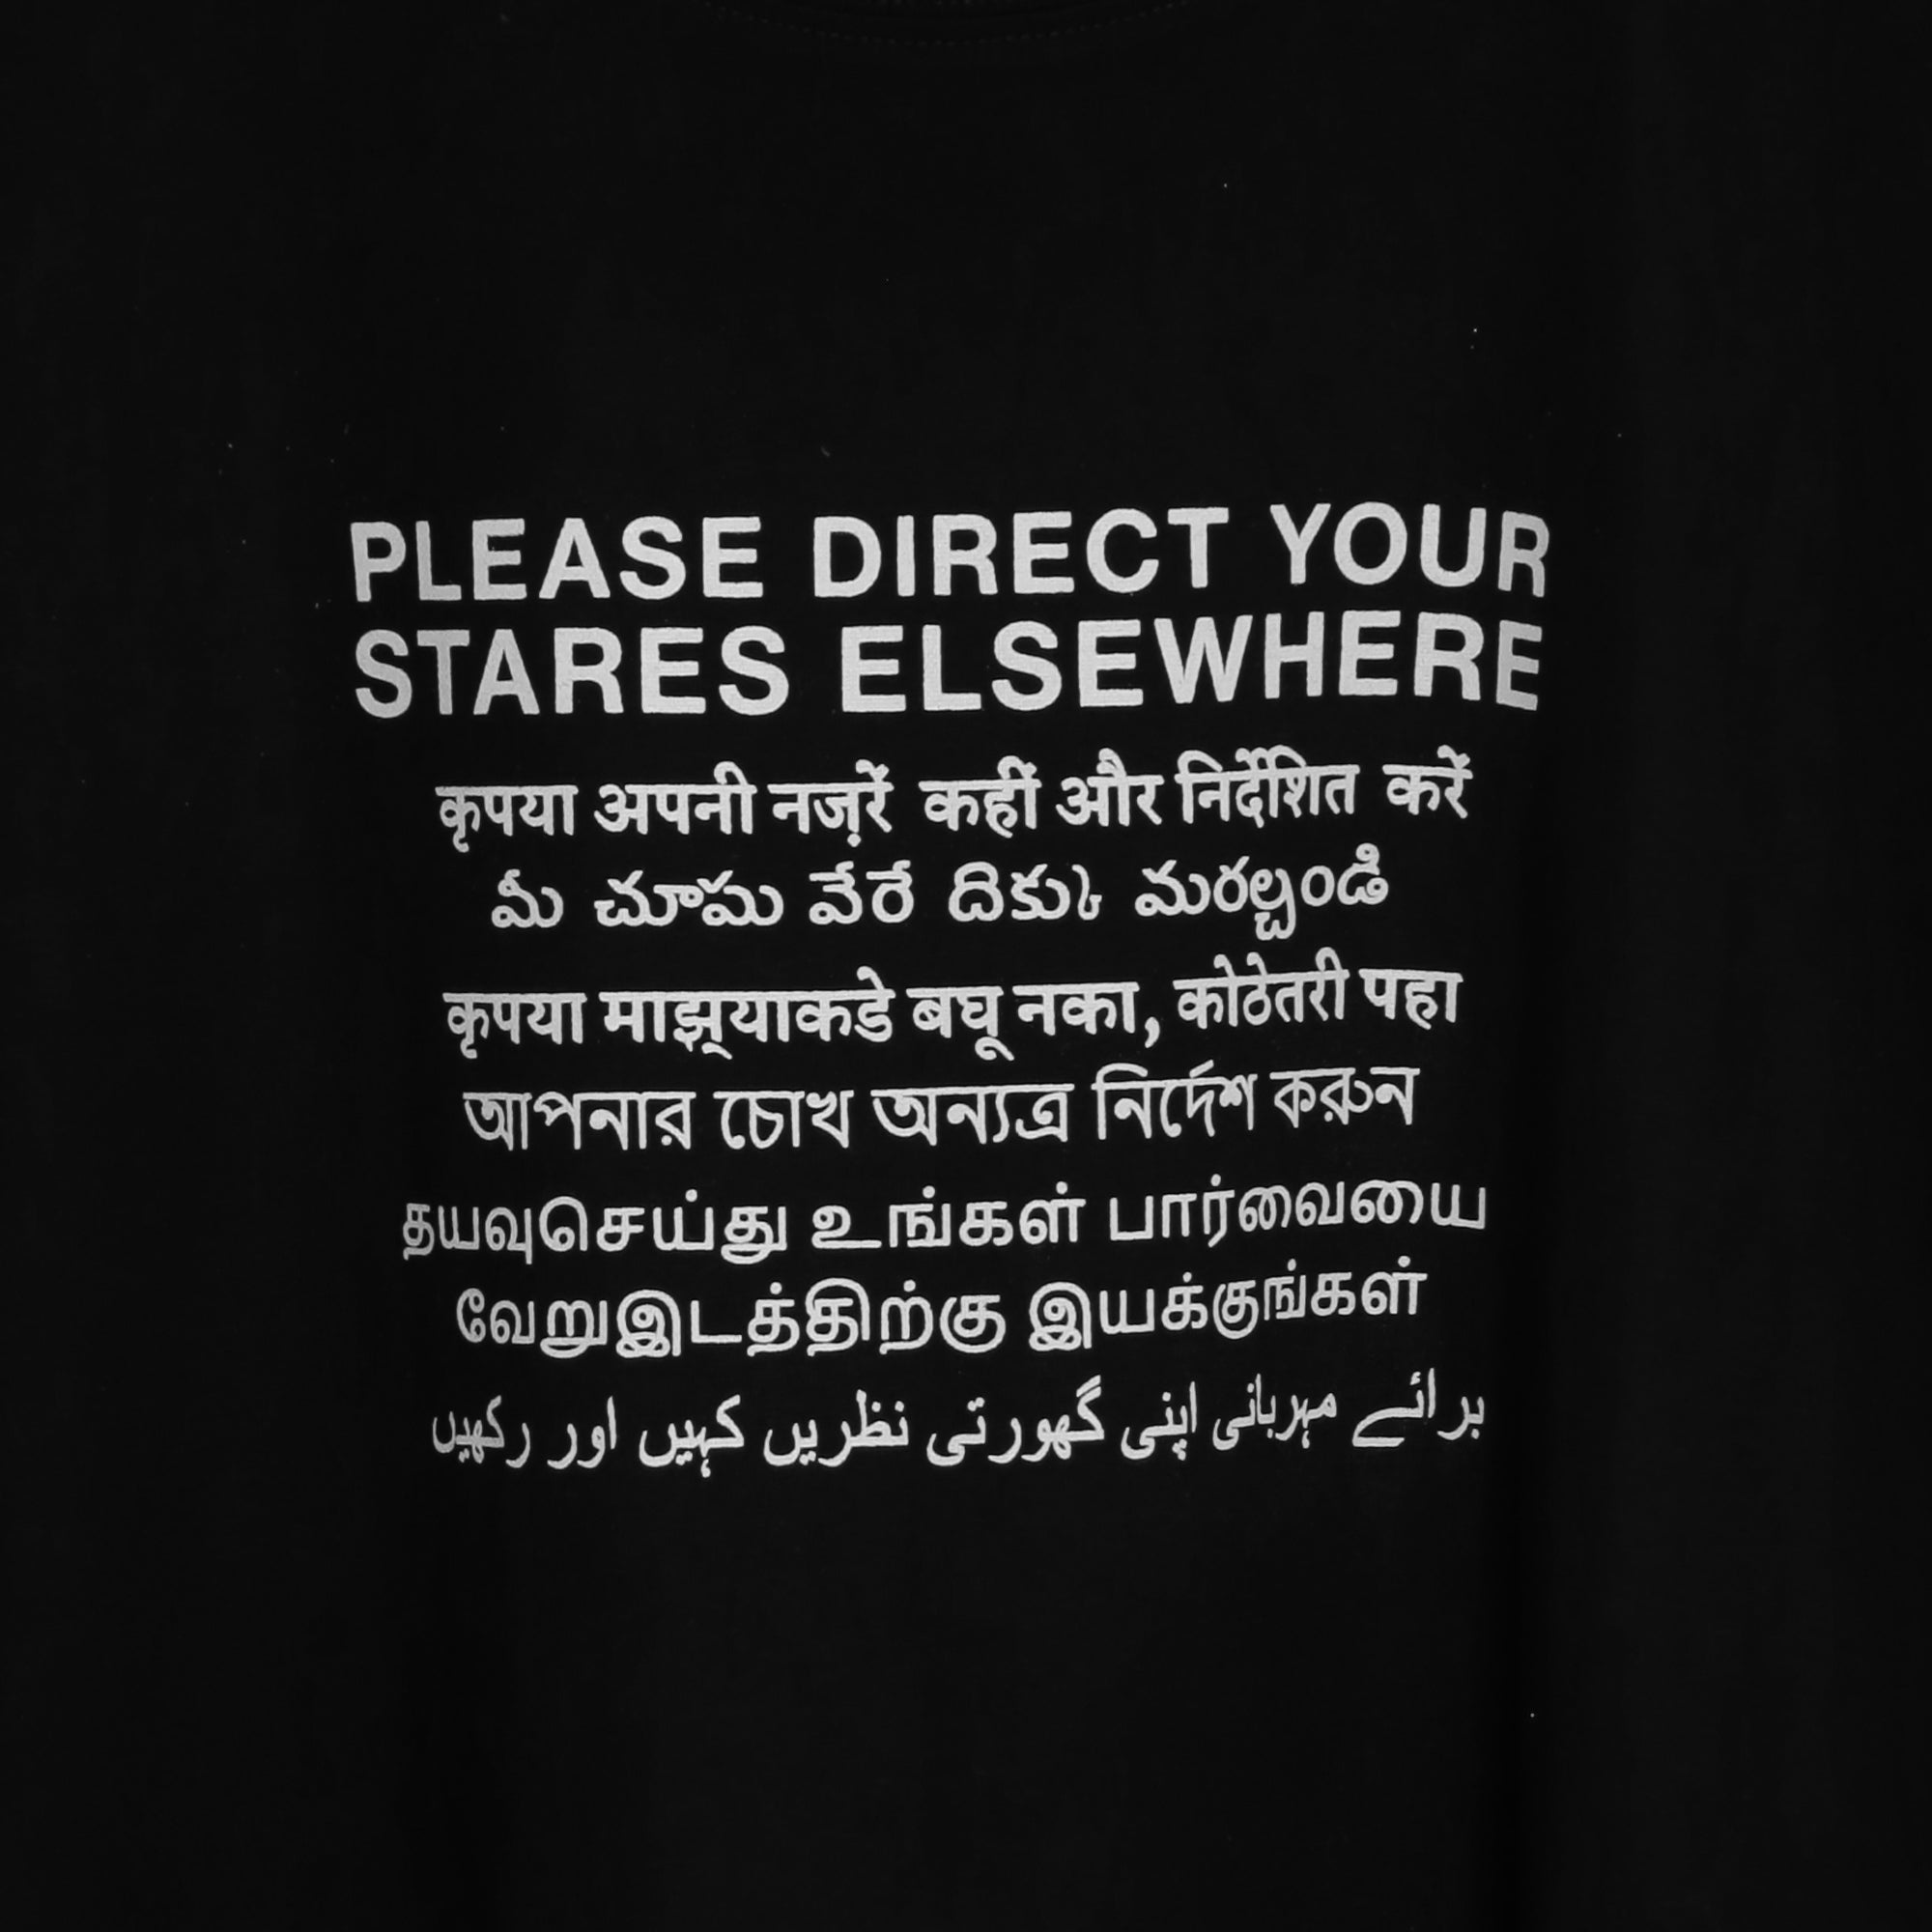 STARE-ELSEWHERE T-SHIRT